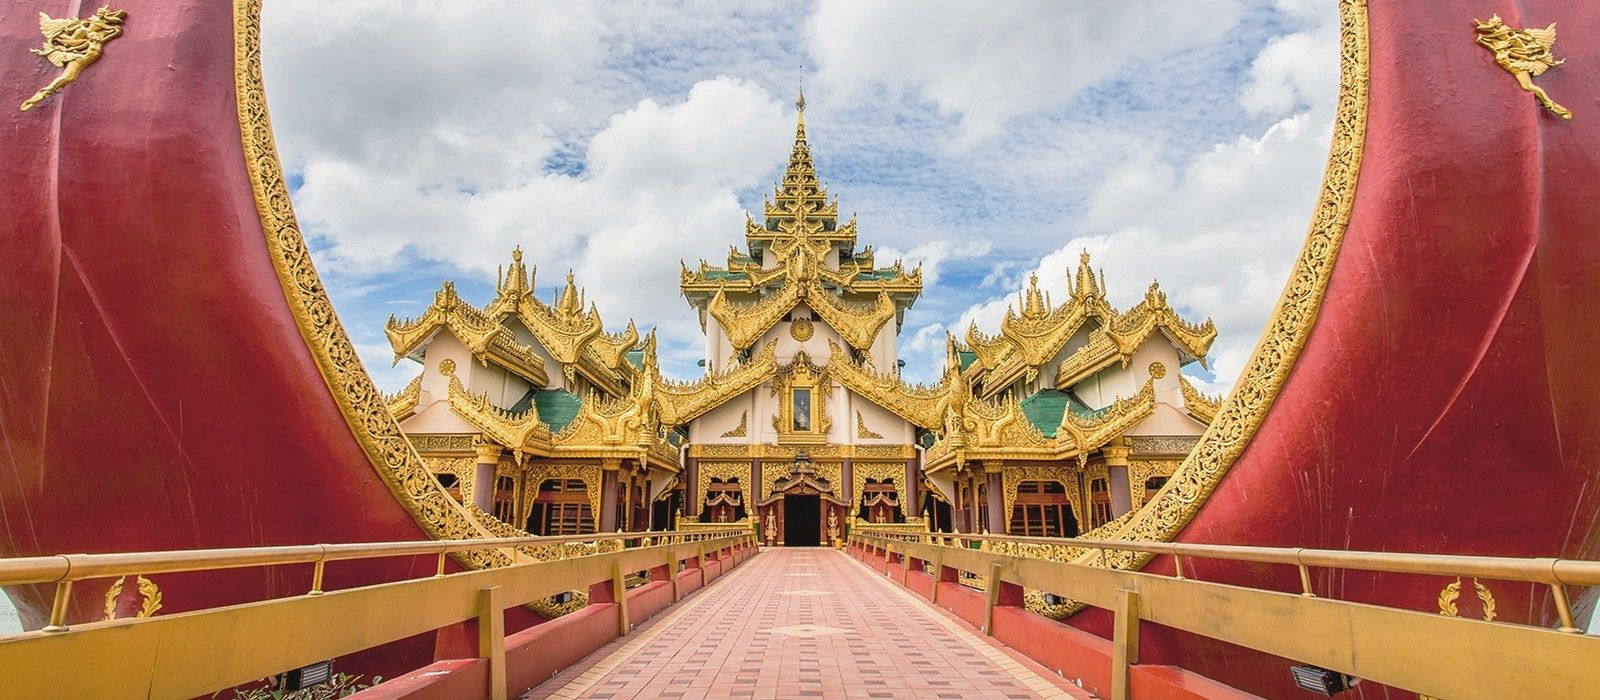 Exclusive Travel Tips For Your Destination Yangon In Myanmar